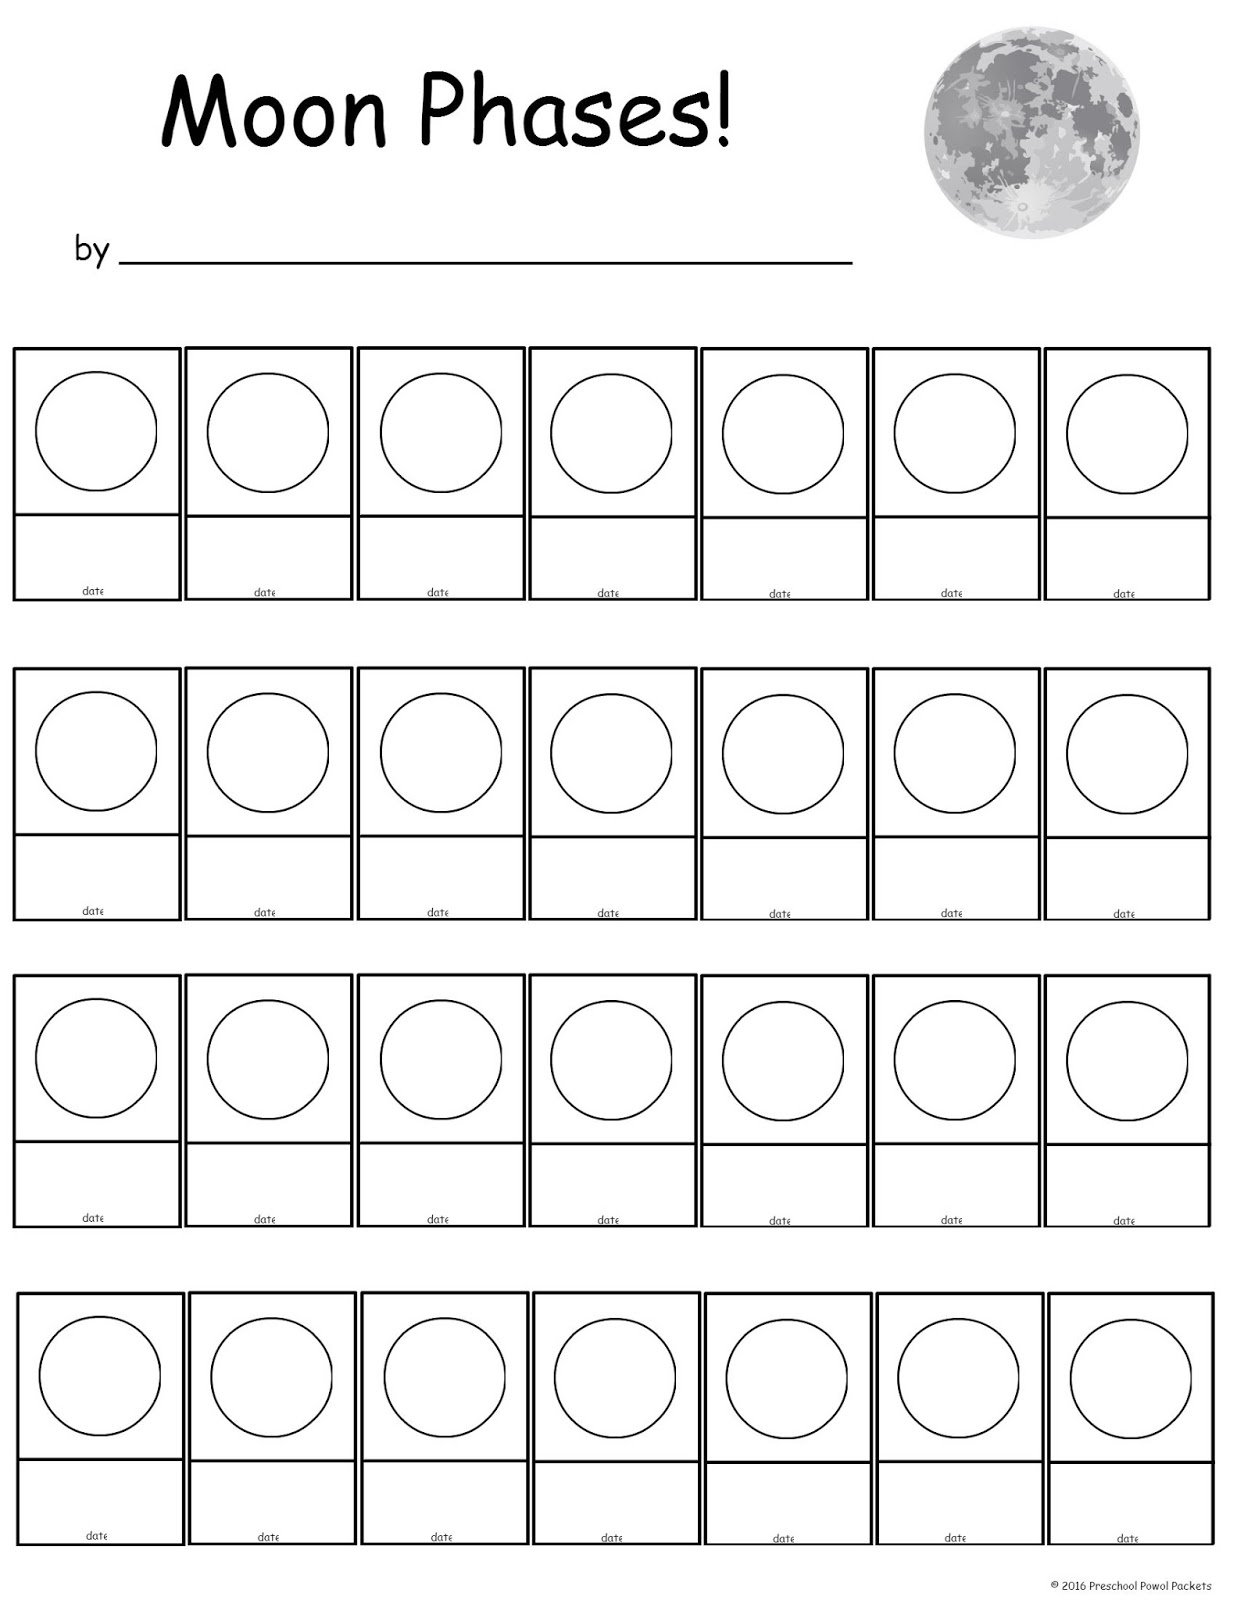 Free Moon Phase Tracking Printable